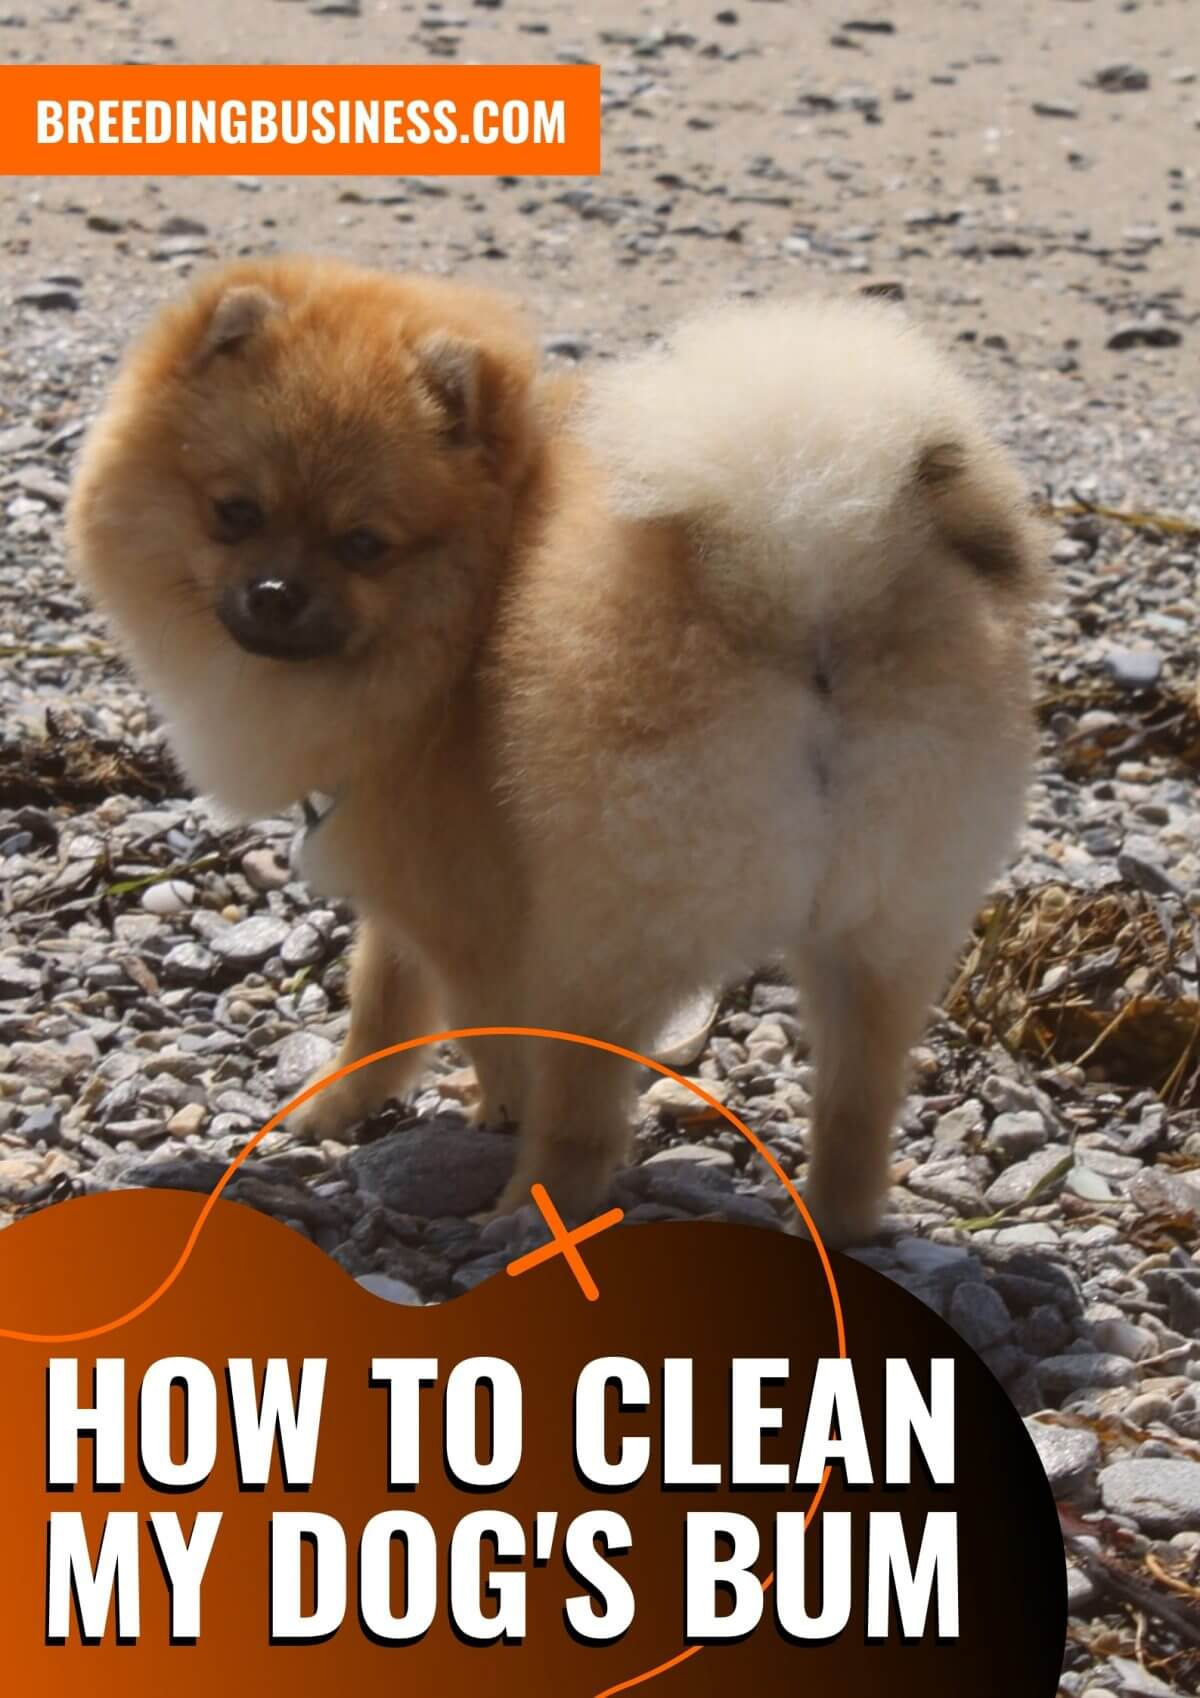 How To Clean a Dog's Bum